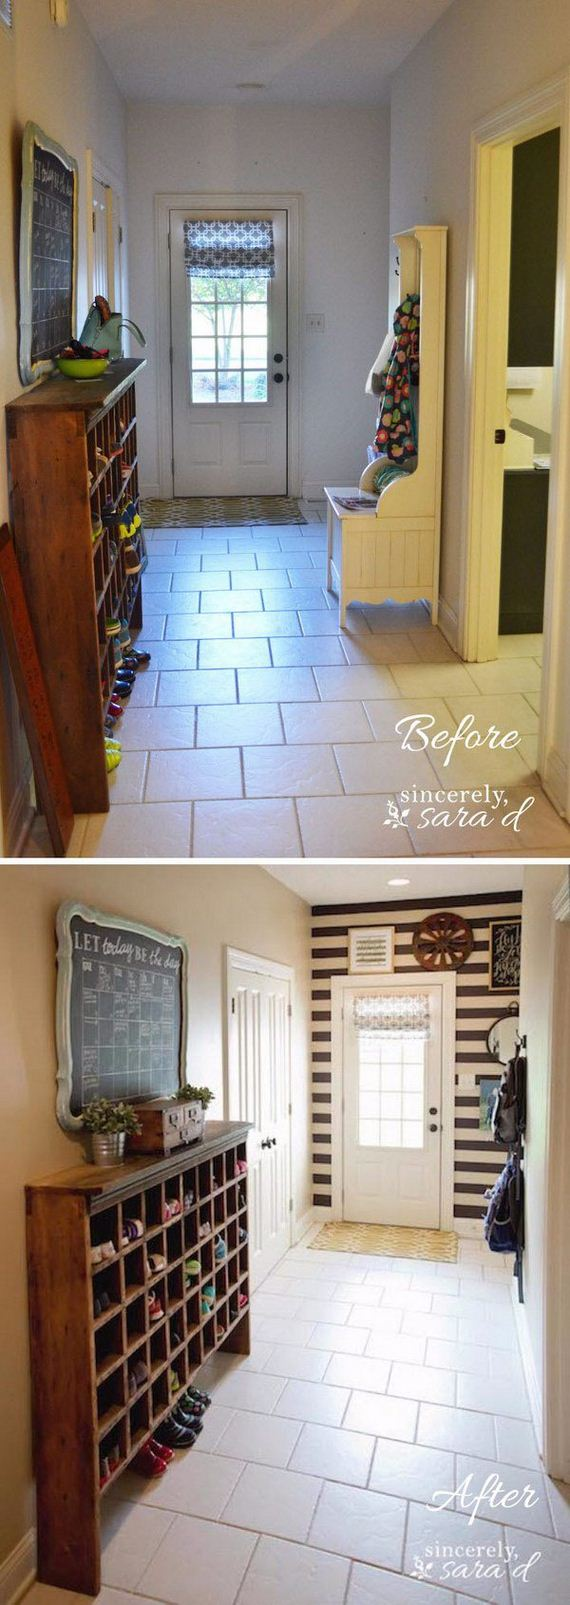 03-amazing-entryway-makeover